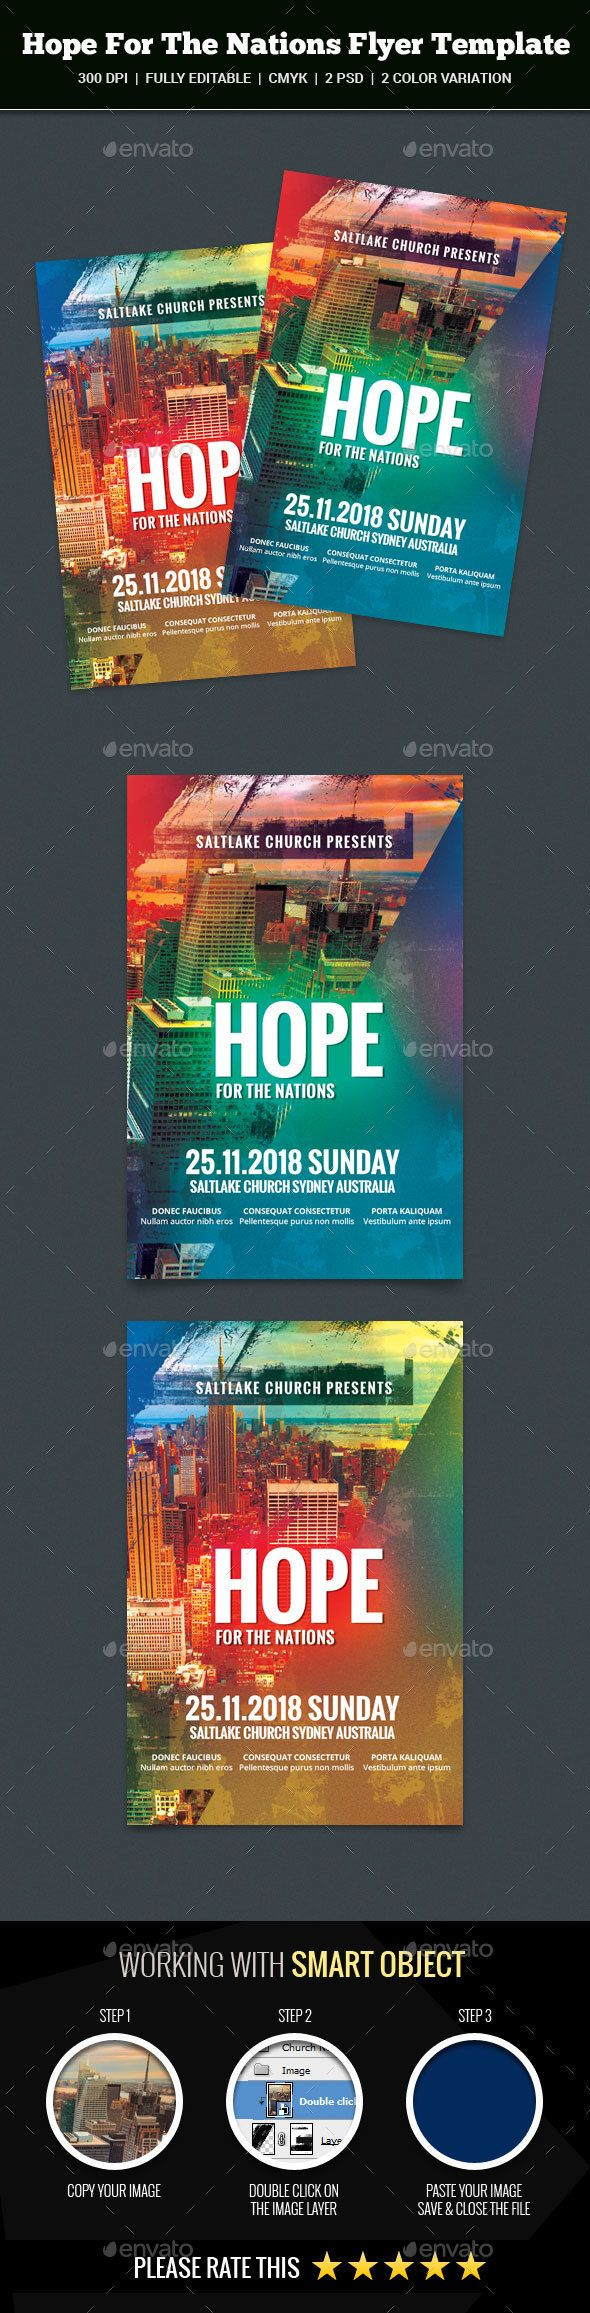 Hope For The Nations Flyer — Photoshop PSD #glory #church • Available here → https://graphicriver.net/item/hope-for-the-nations-flyer/17450137?ref=pxcr